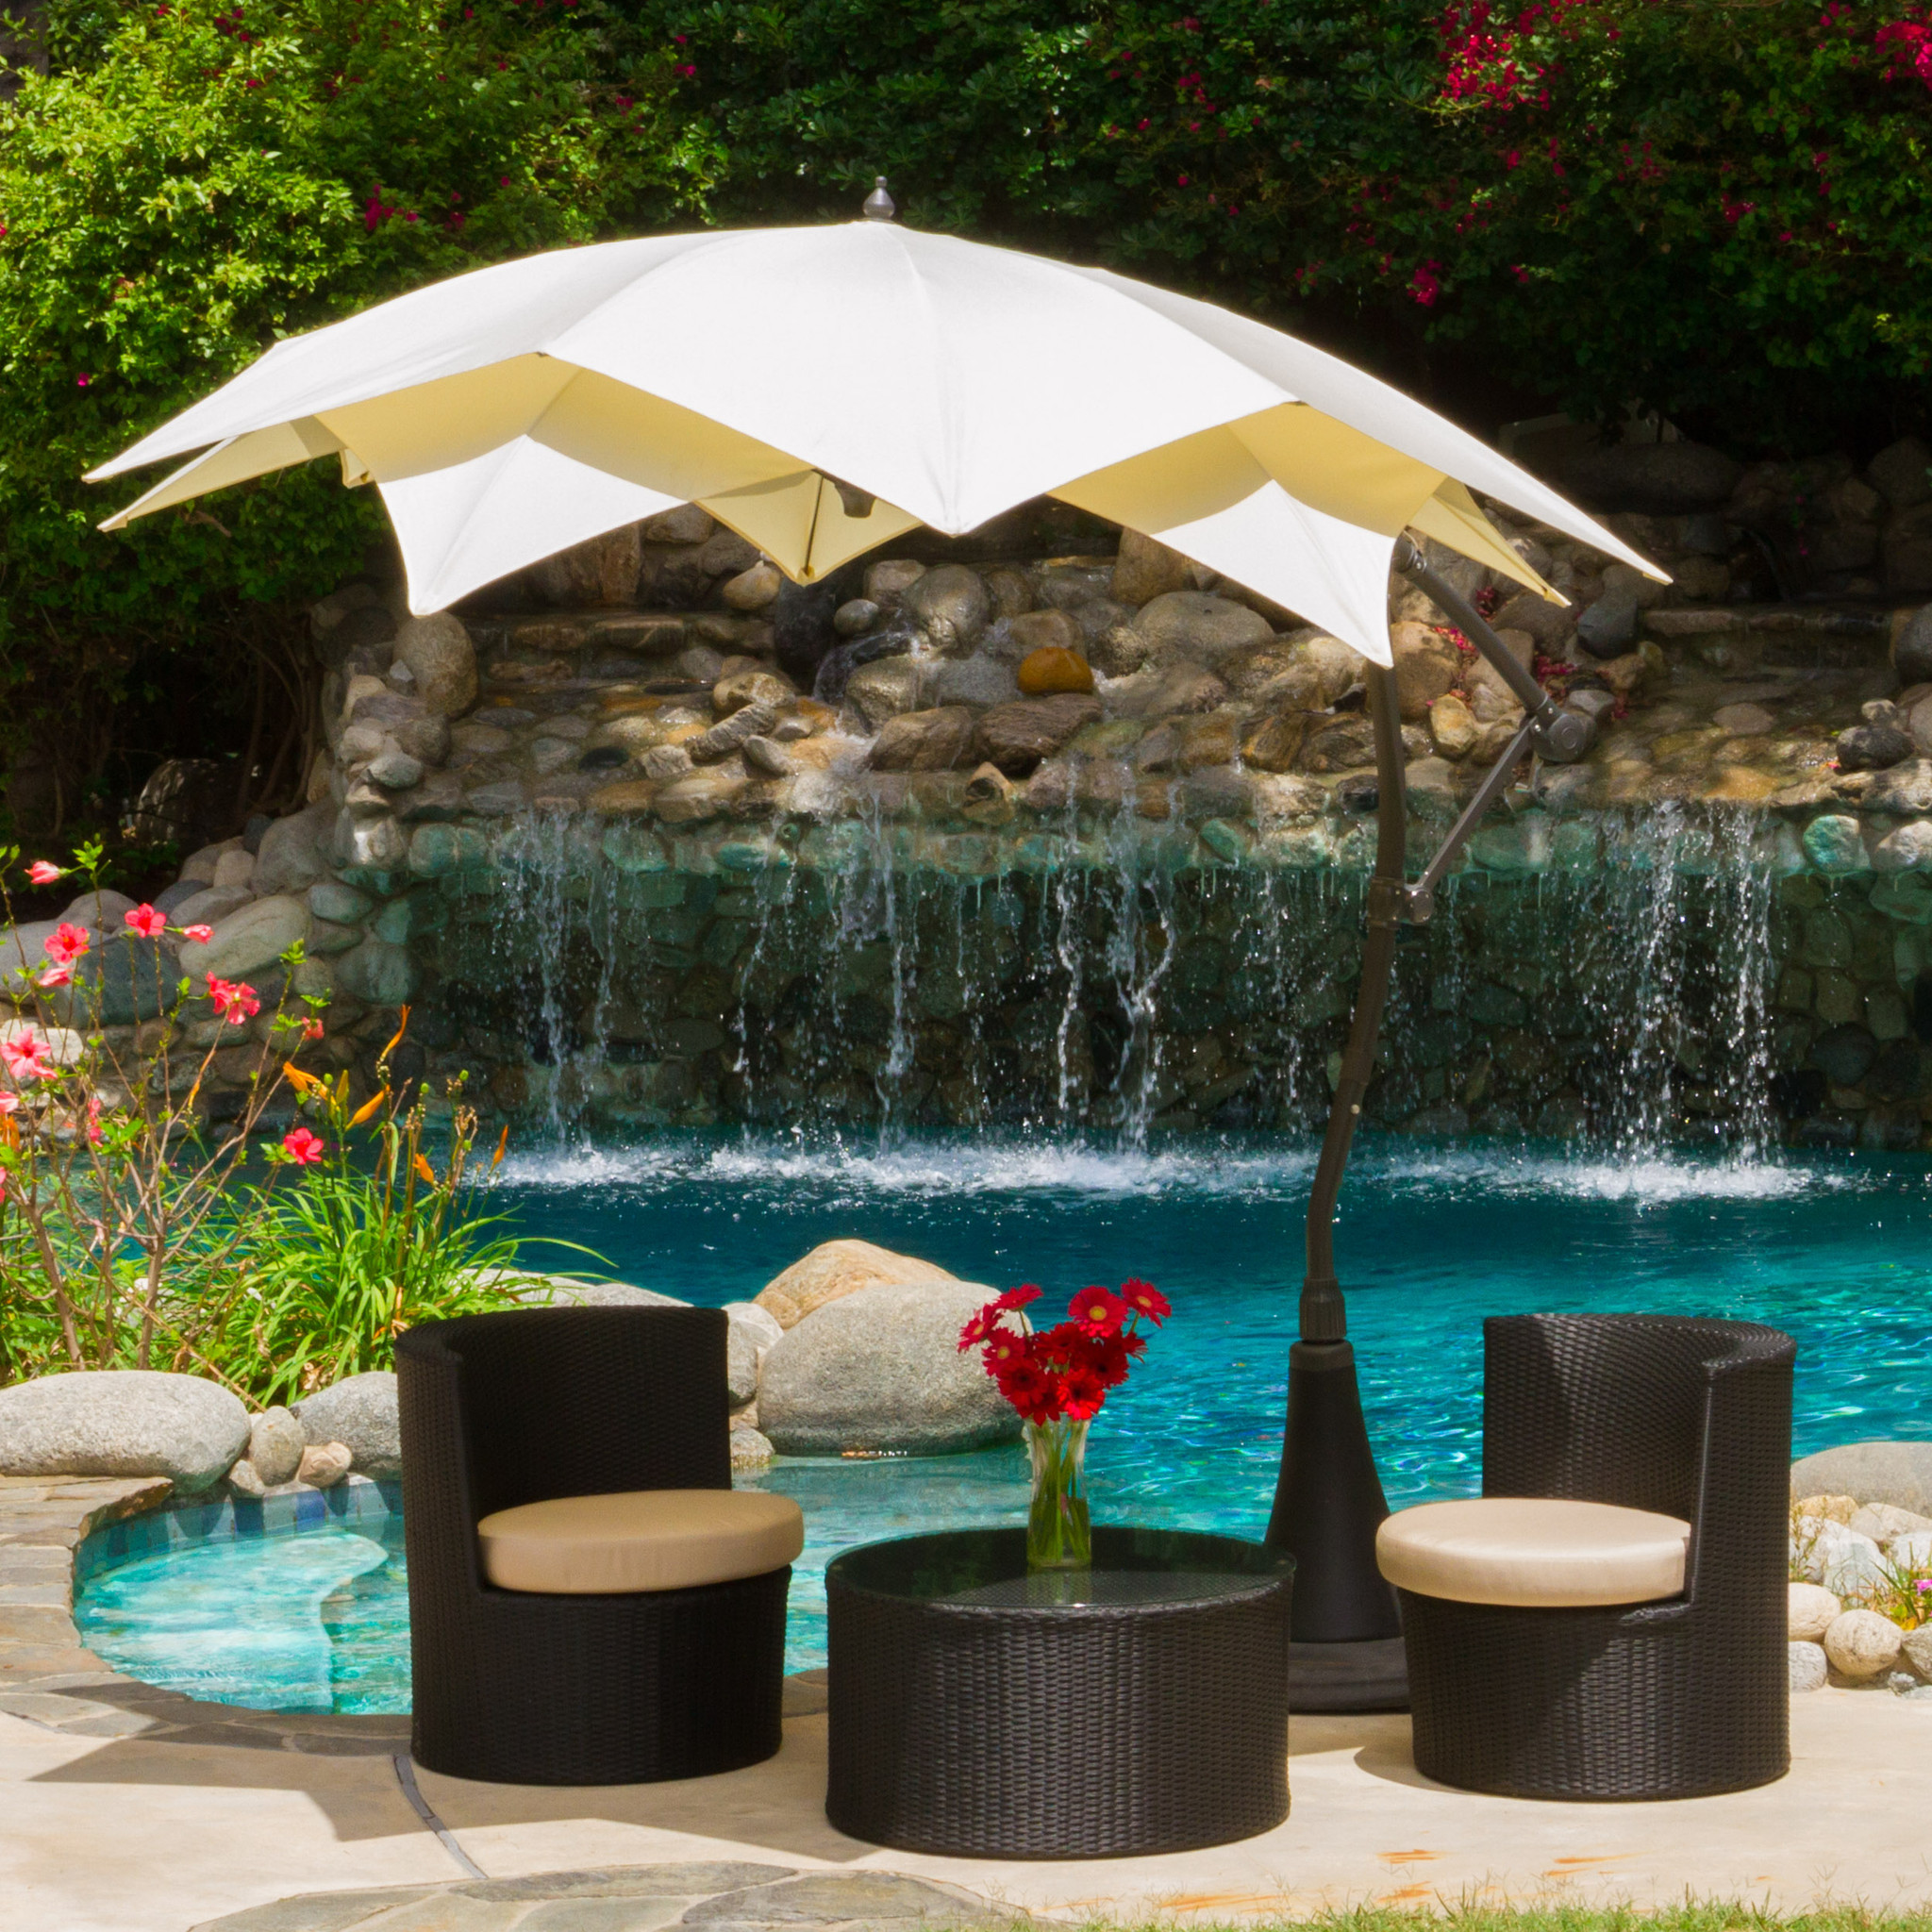 Charming White Cantilever Patio Umbrella In Charming Design With Sofa Set  For Patio Decor Ideas